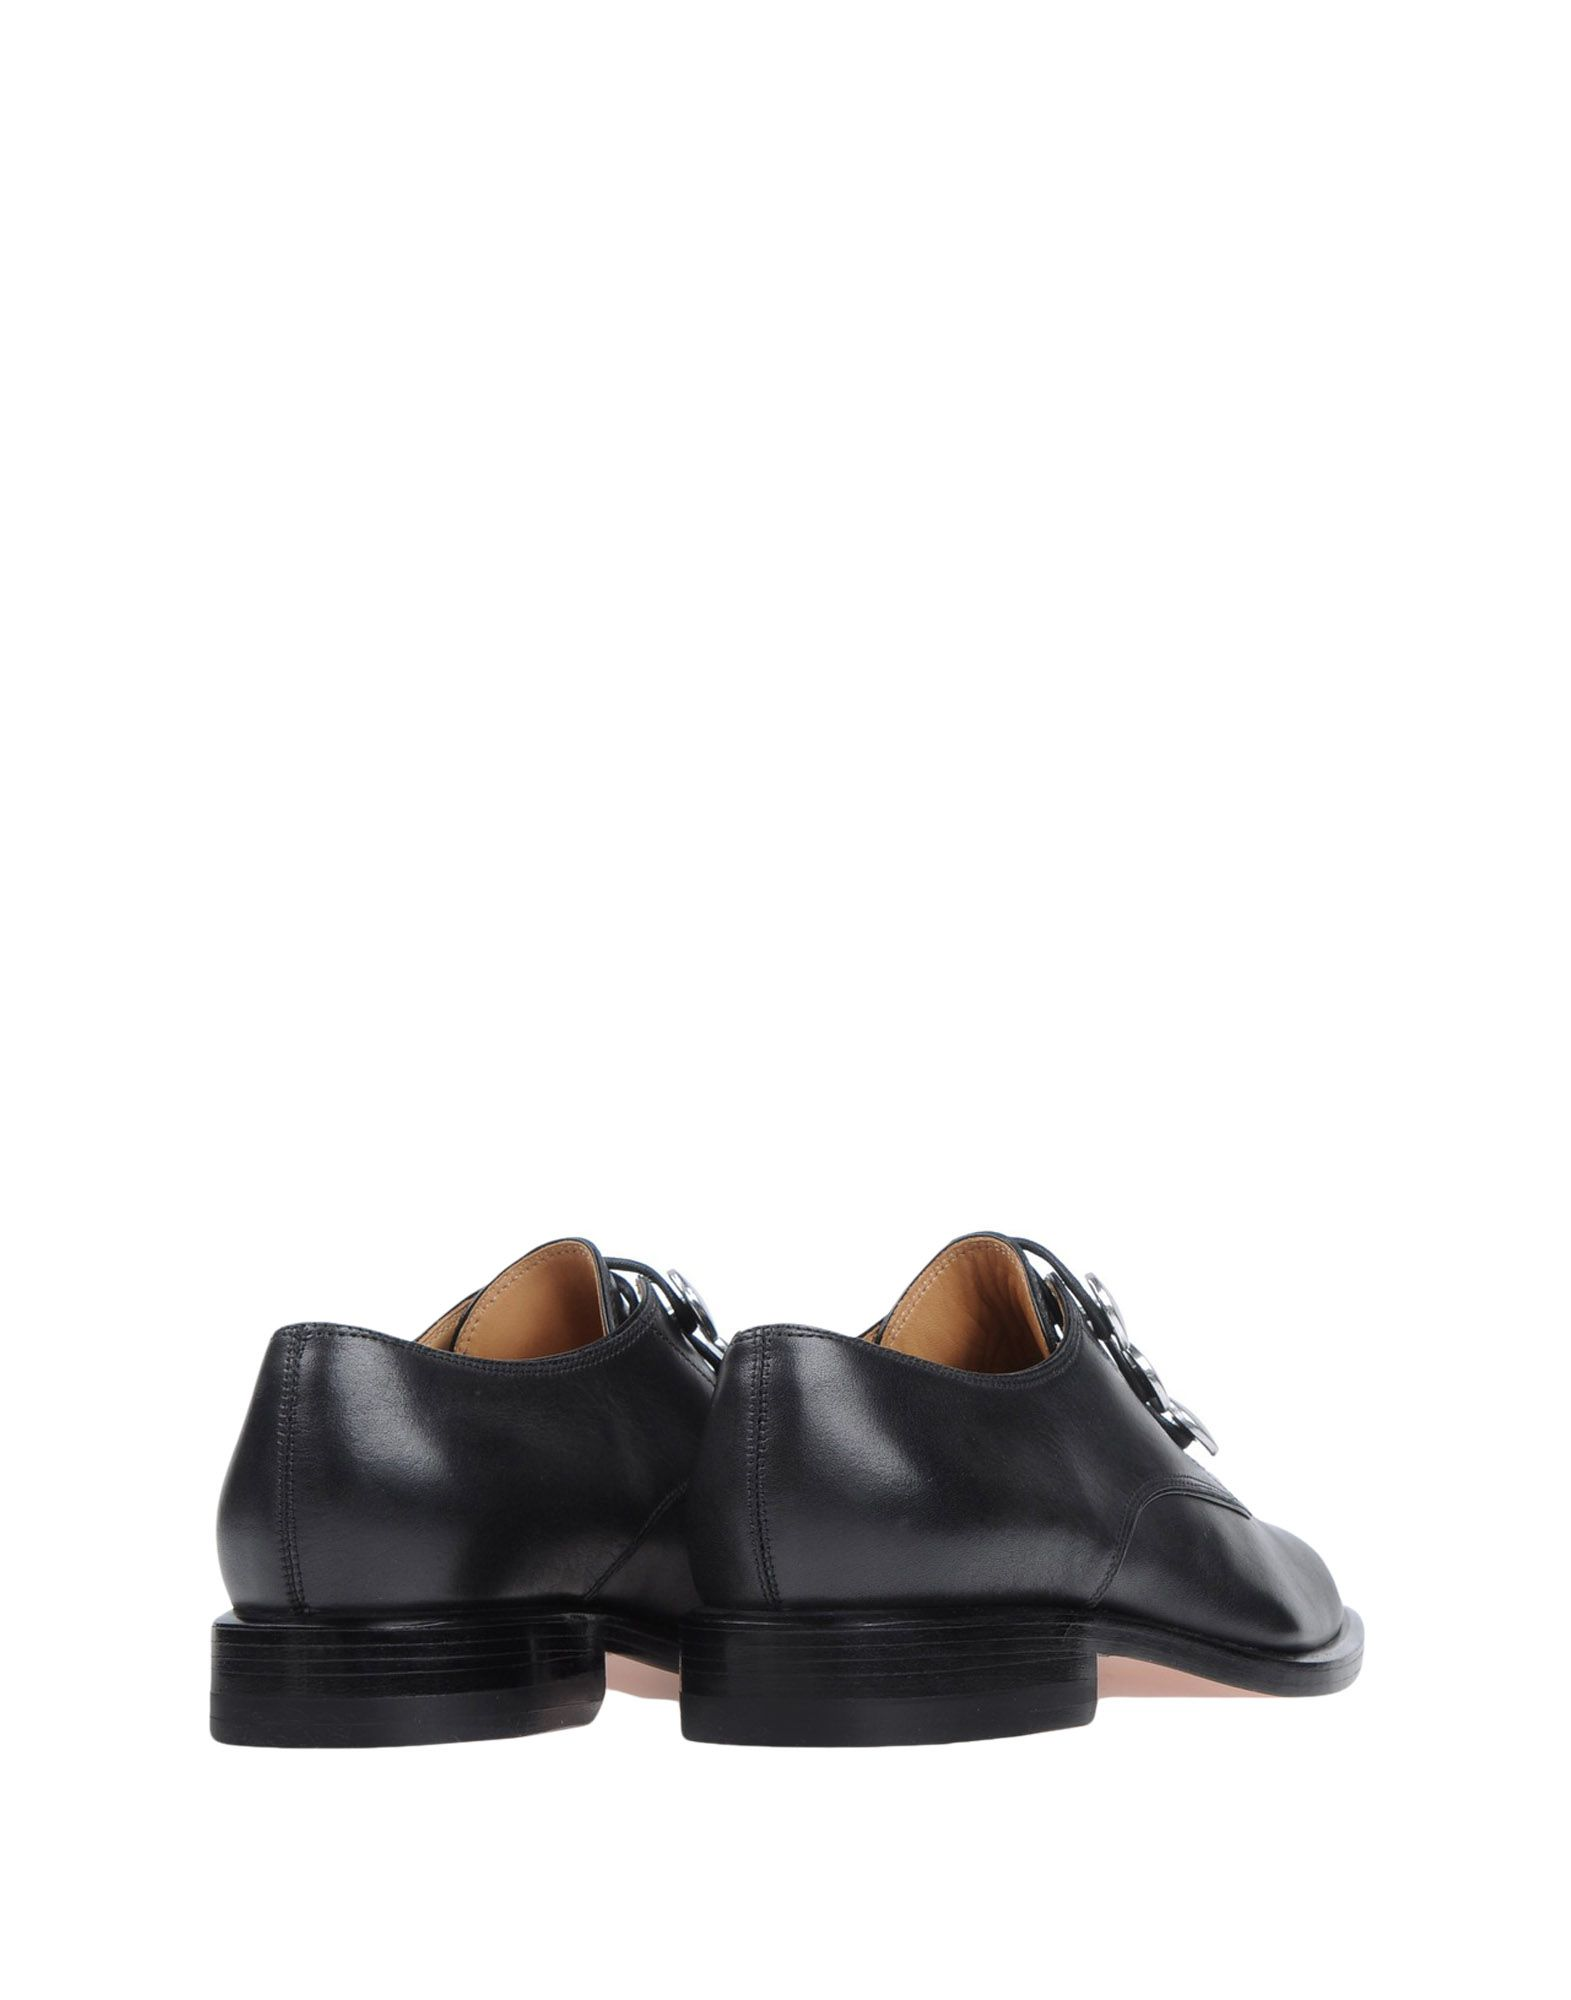 Chaussures - Tribunaux Giannico KAVwRY